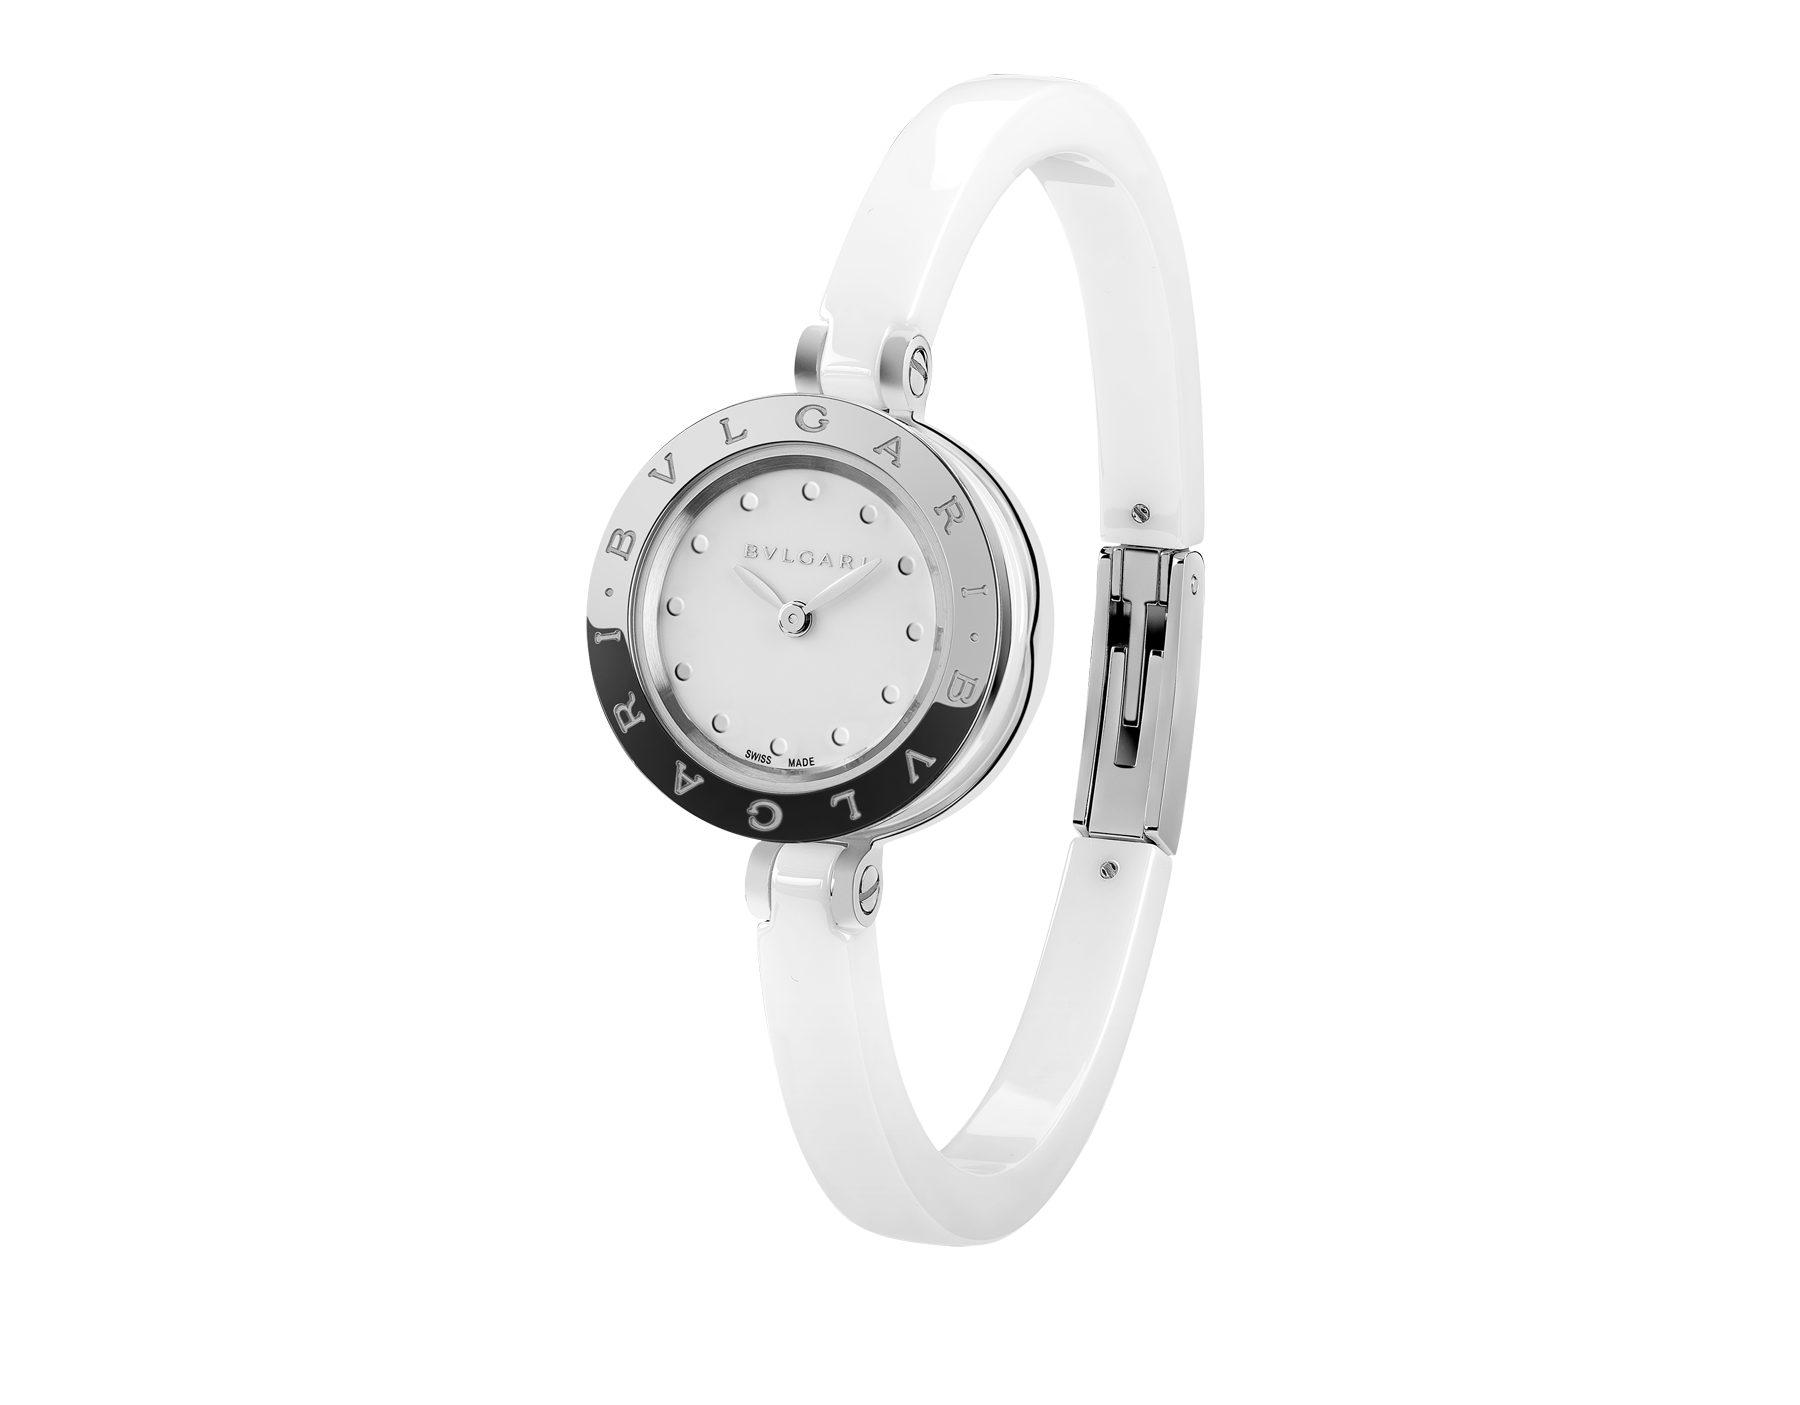 Bzero1-Watch-BVLGARI-102086-E-1.png